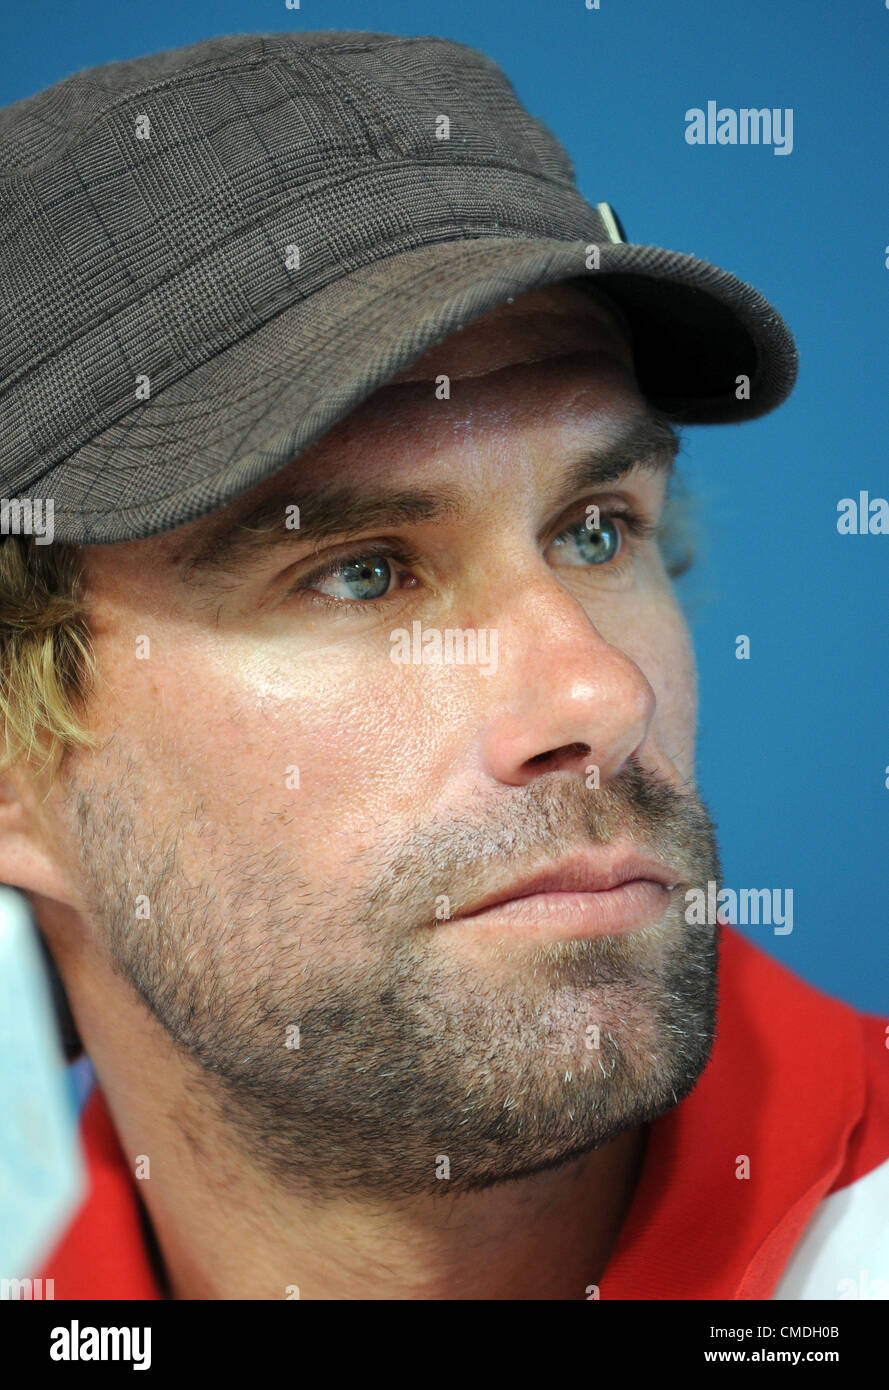 Olympic Sailing press conference, Iain Percy - Stock Image